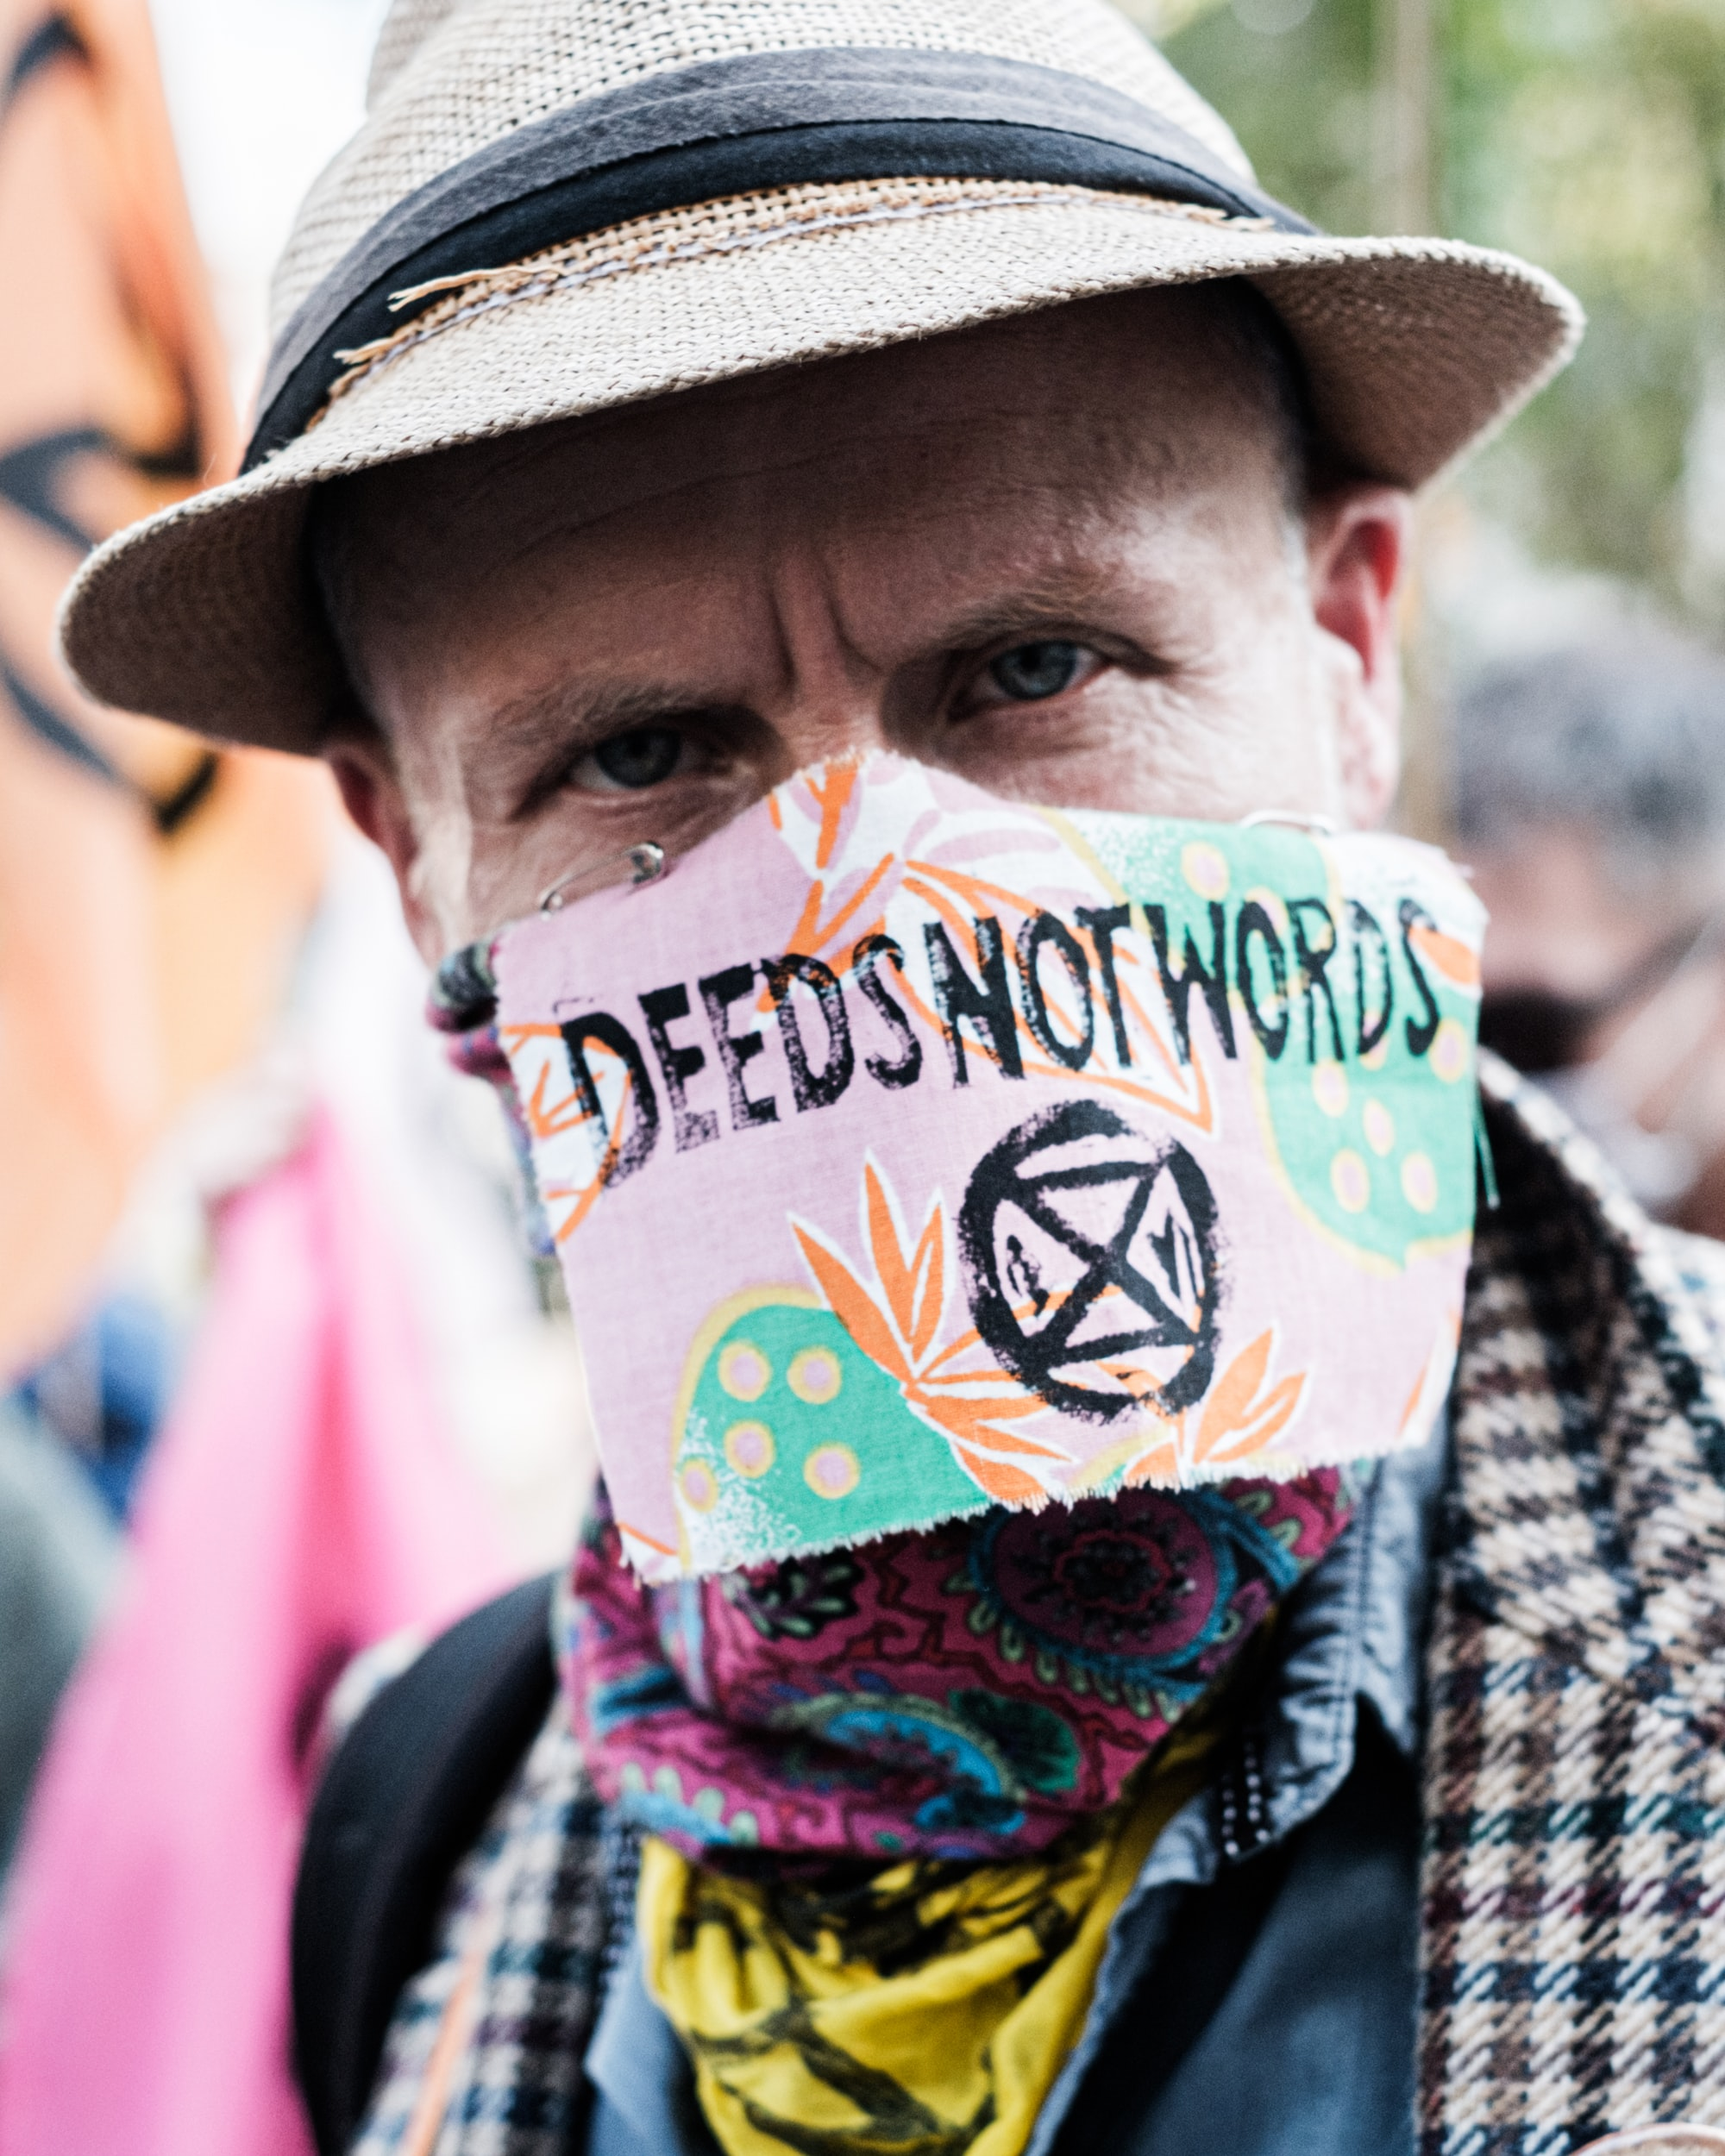 Extinction Rebellion September 2020 Protests for the launch of the Climate and Ecological Emergency Bill (CEE Bill) Across The City of London